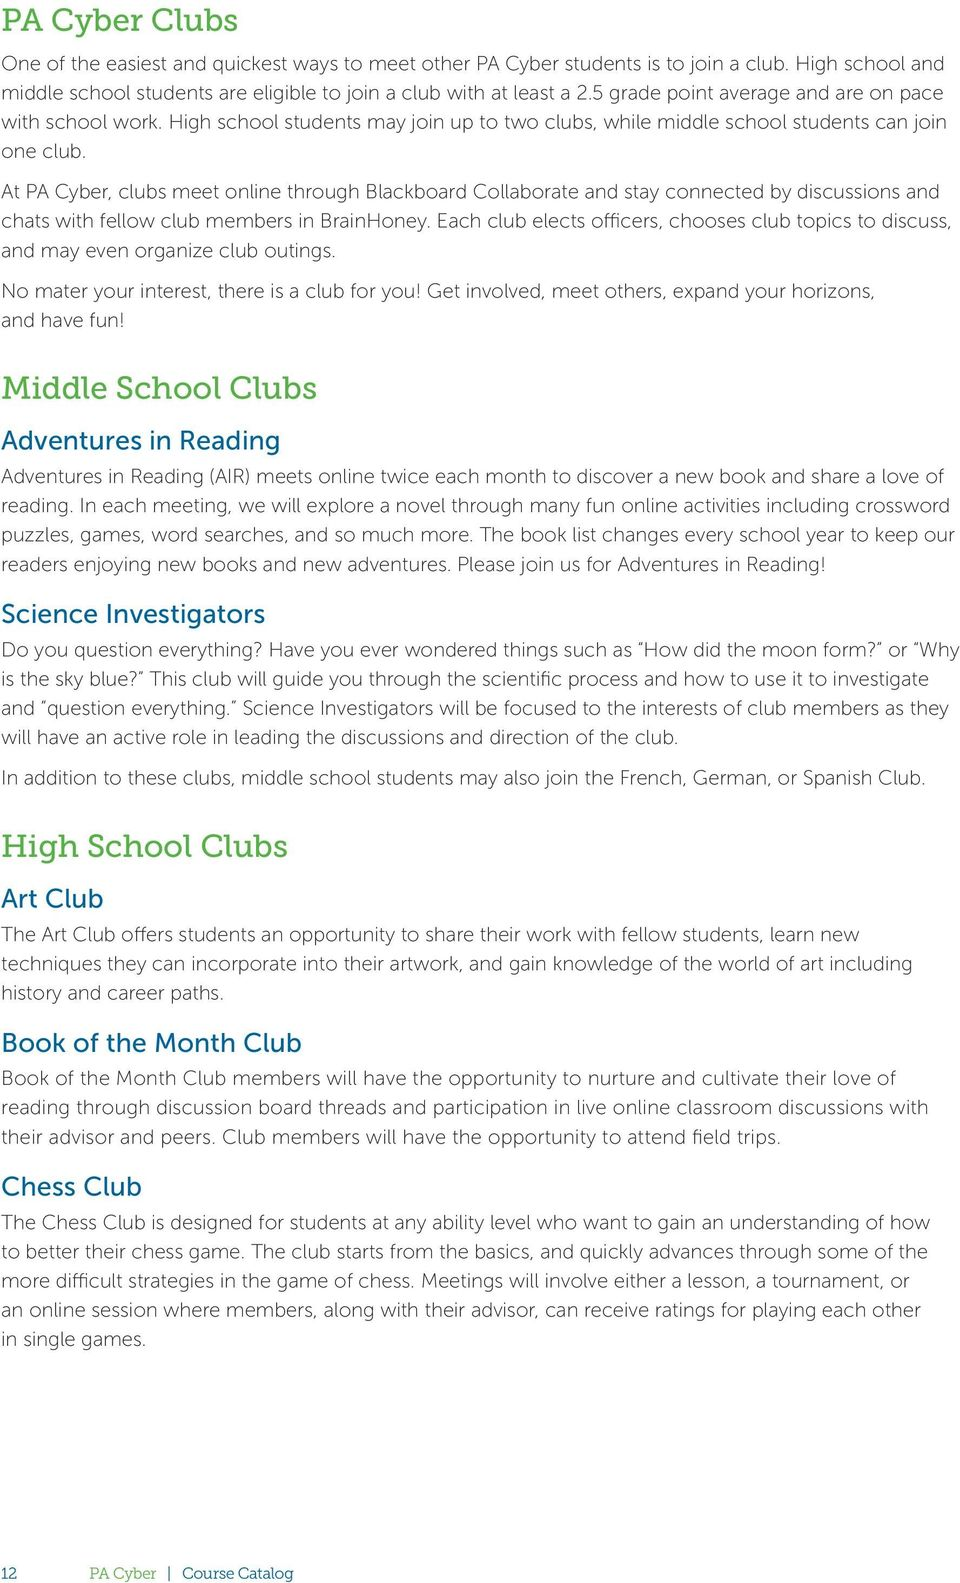 Course catalog pacyber pdf at pa cyber clubs meet online through blackboard collaborate and stay connected by discussions and fandeluxe Image collections